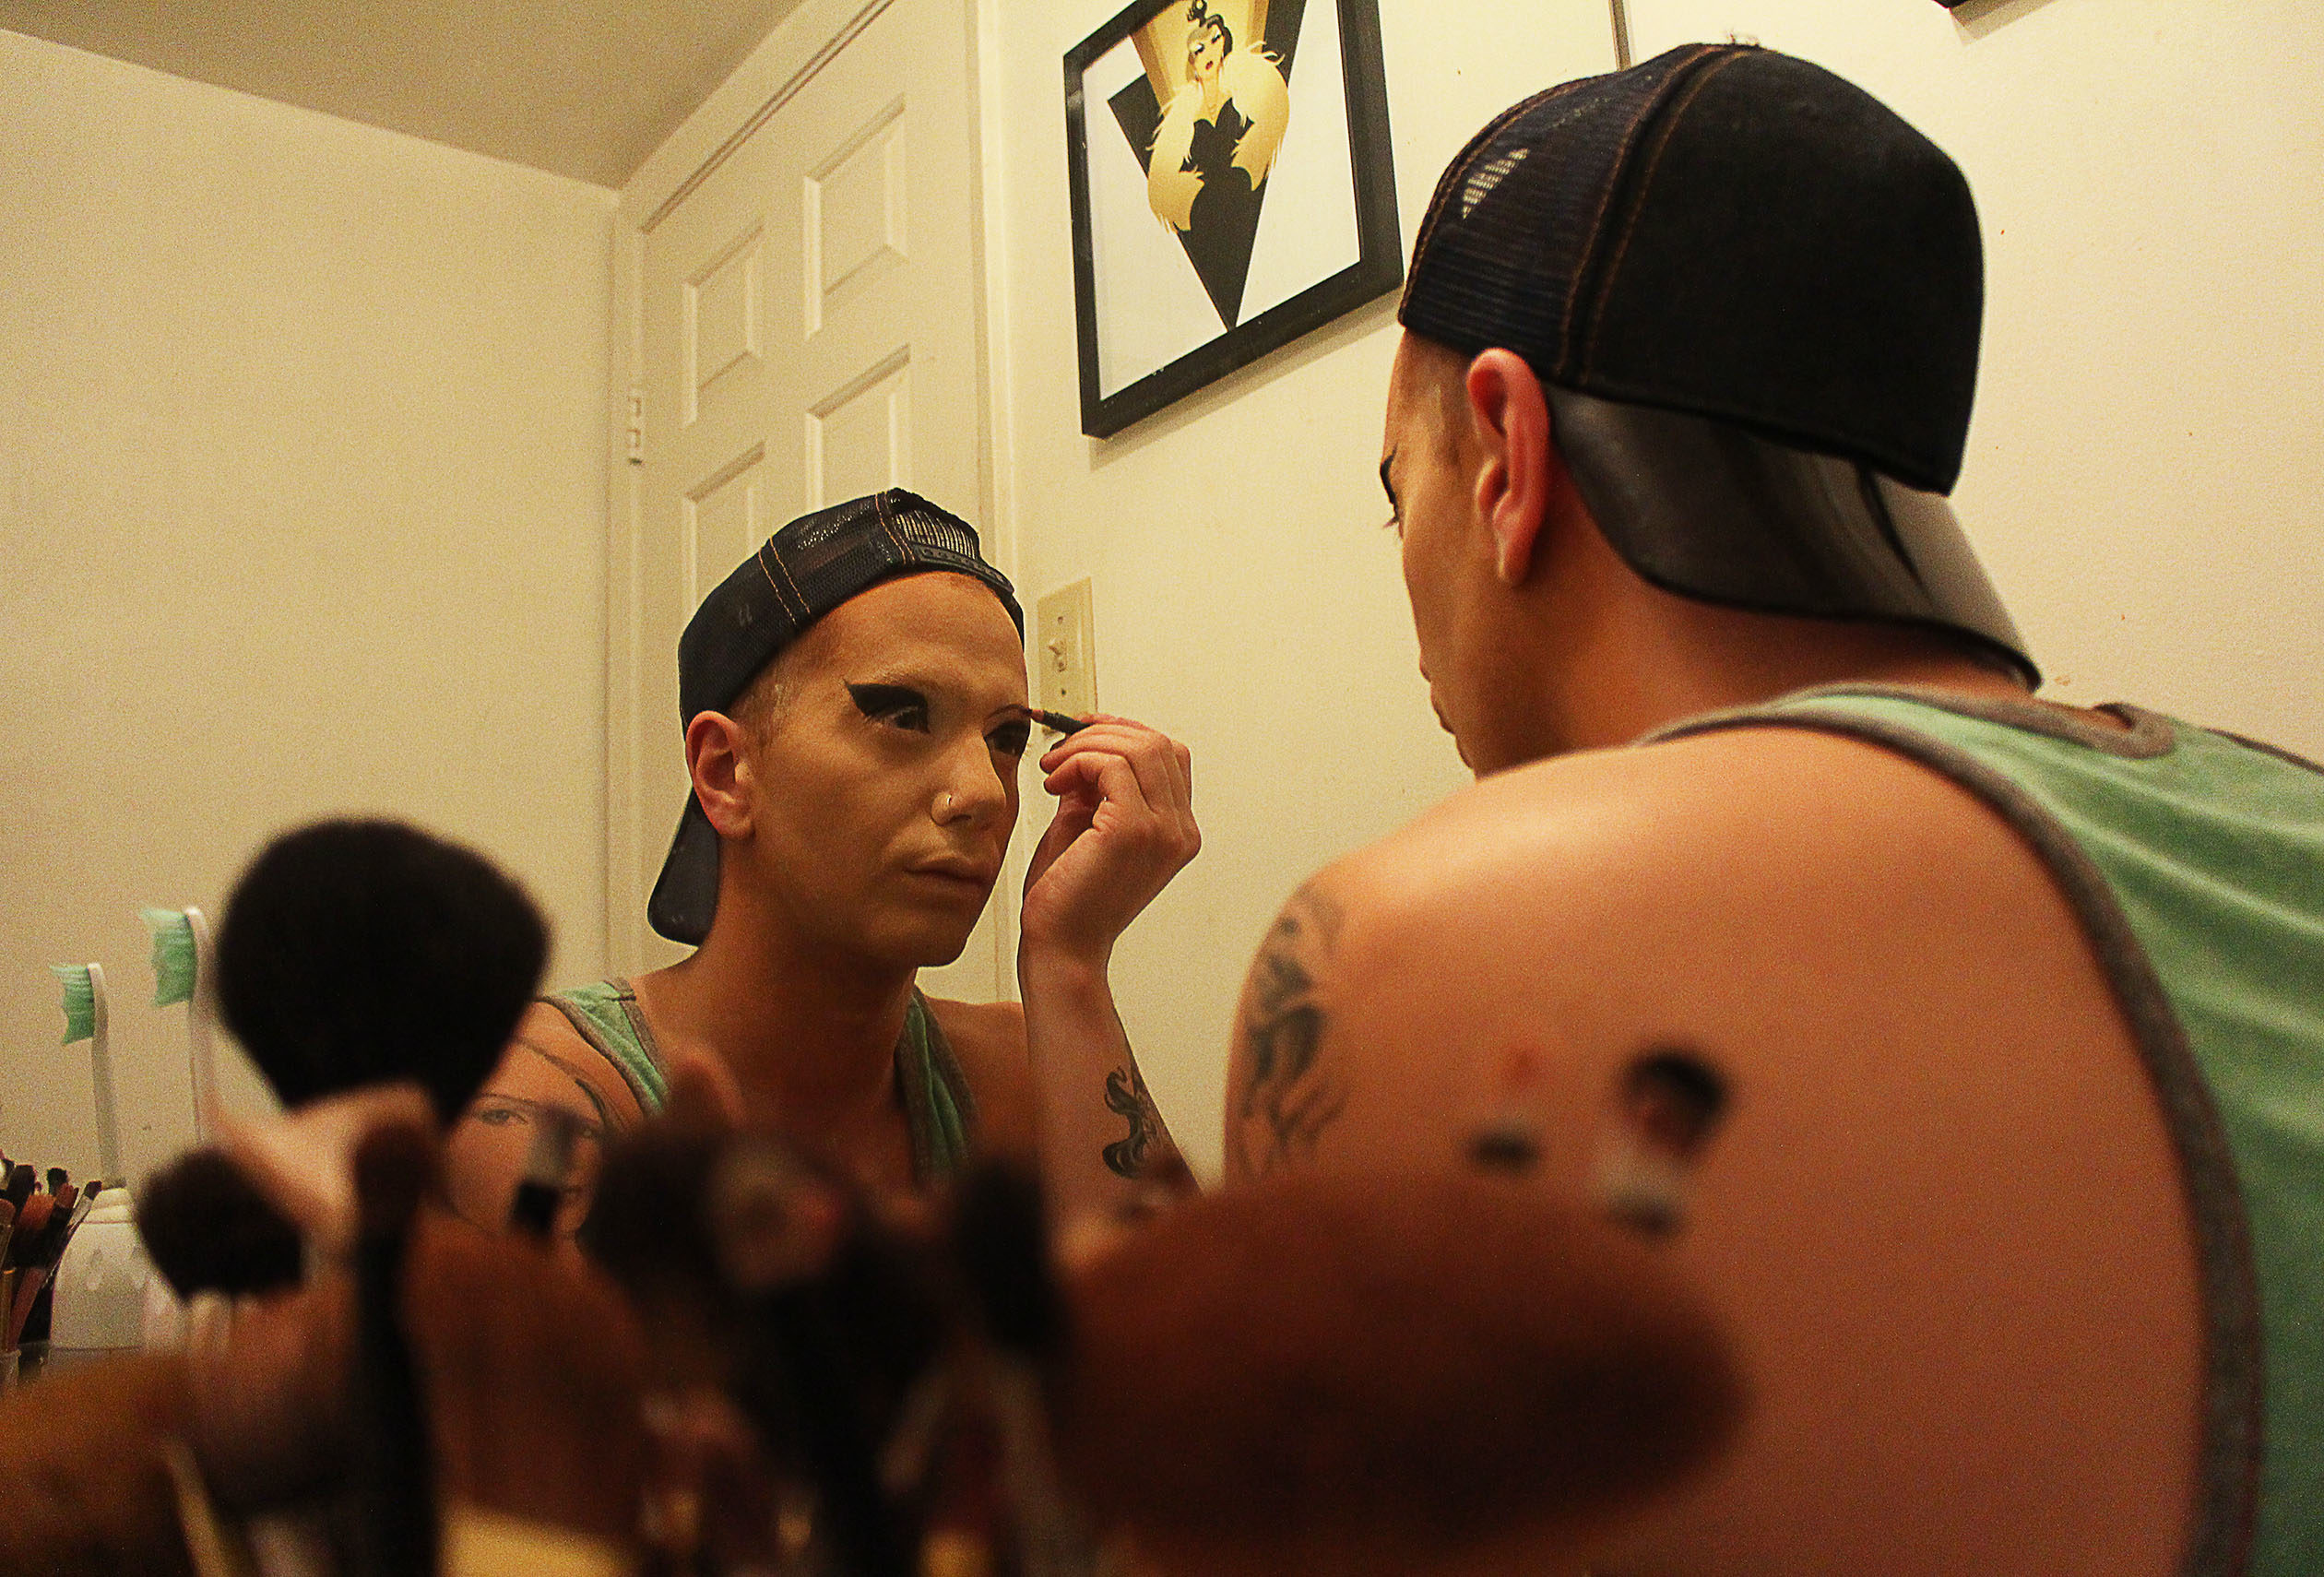 Matty Cameron applying makeup in the mirror, with brushes visible in the left corner of the photo.